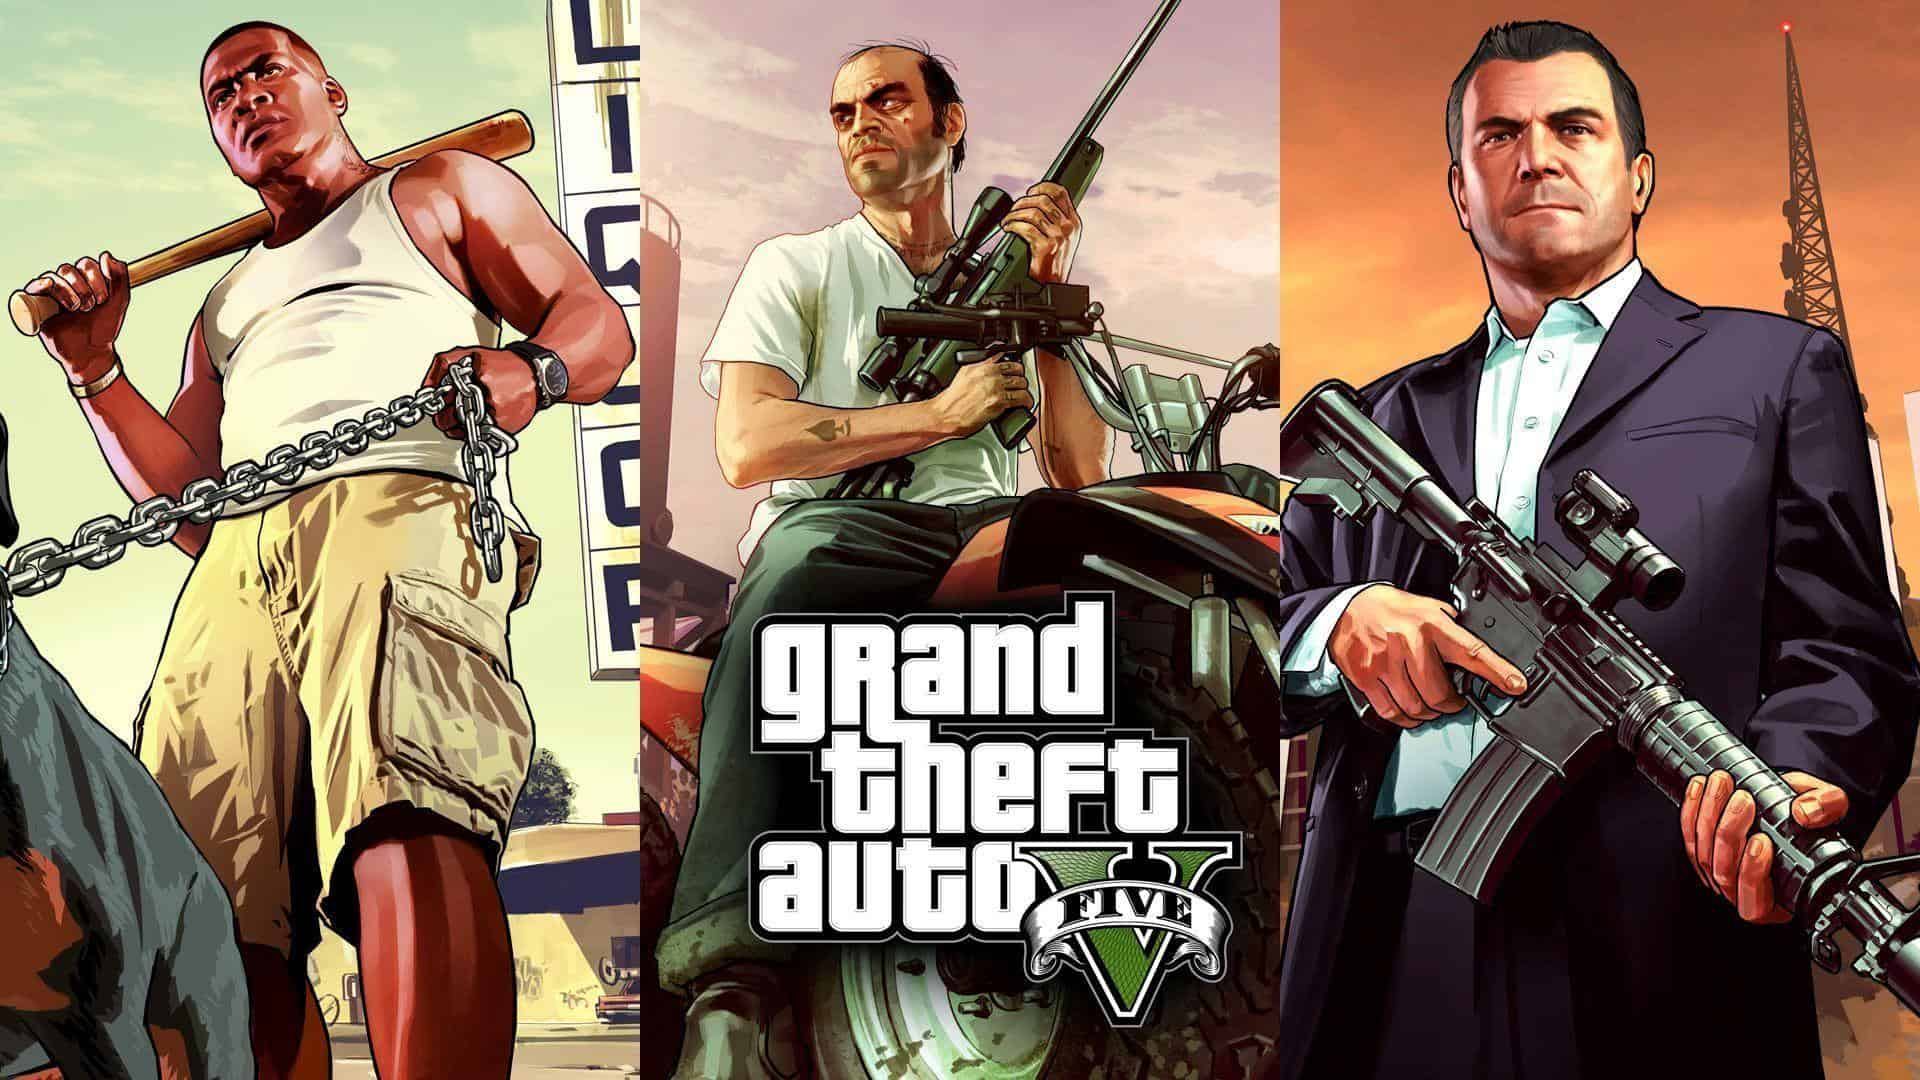 Best Grand Theft Auto Games - GTA V